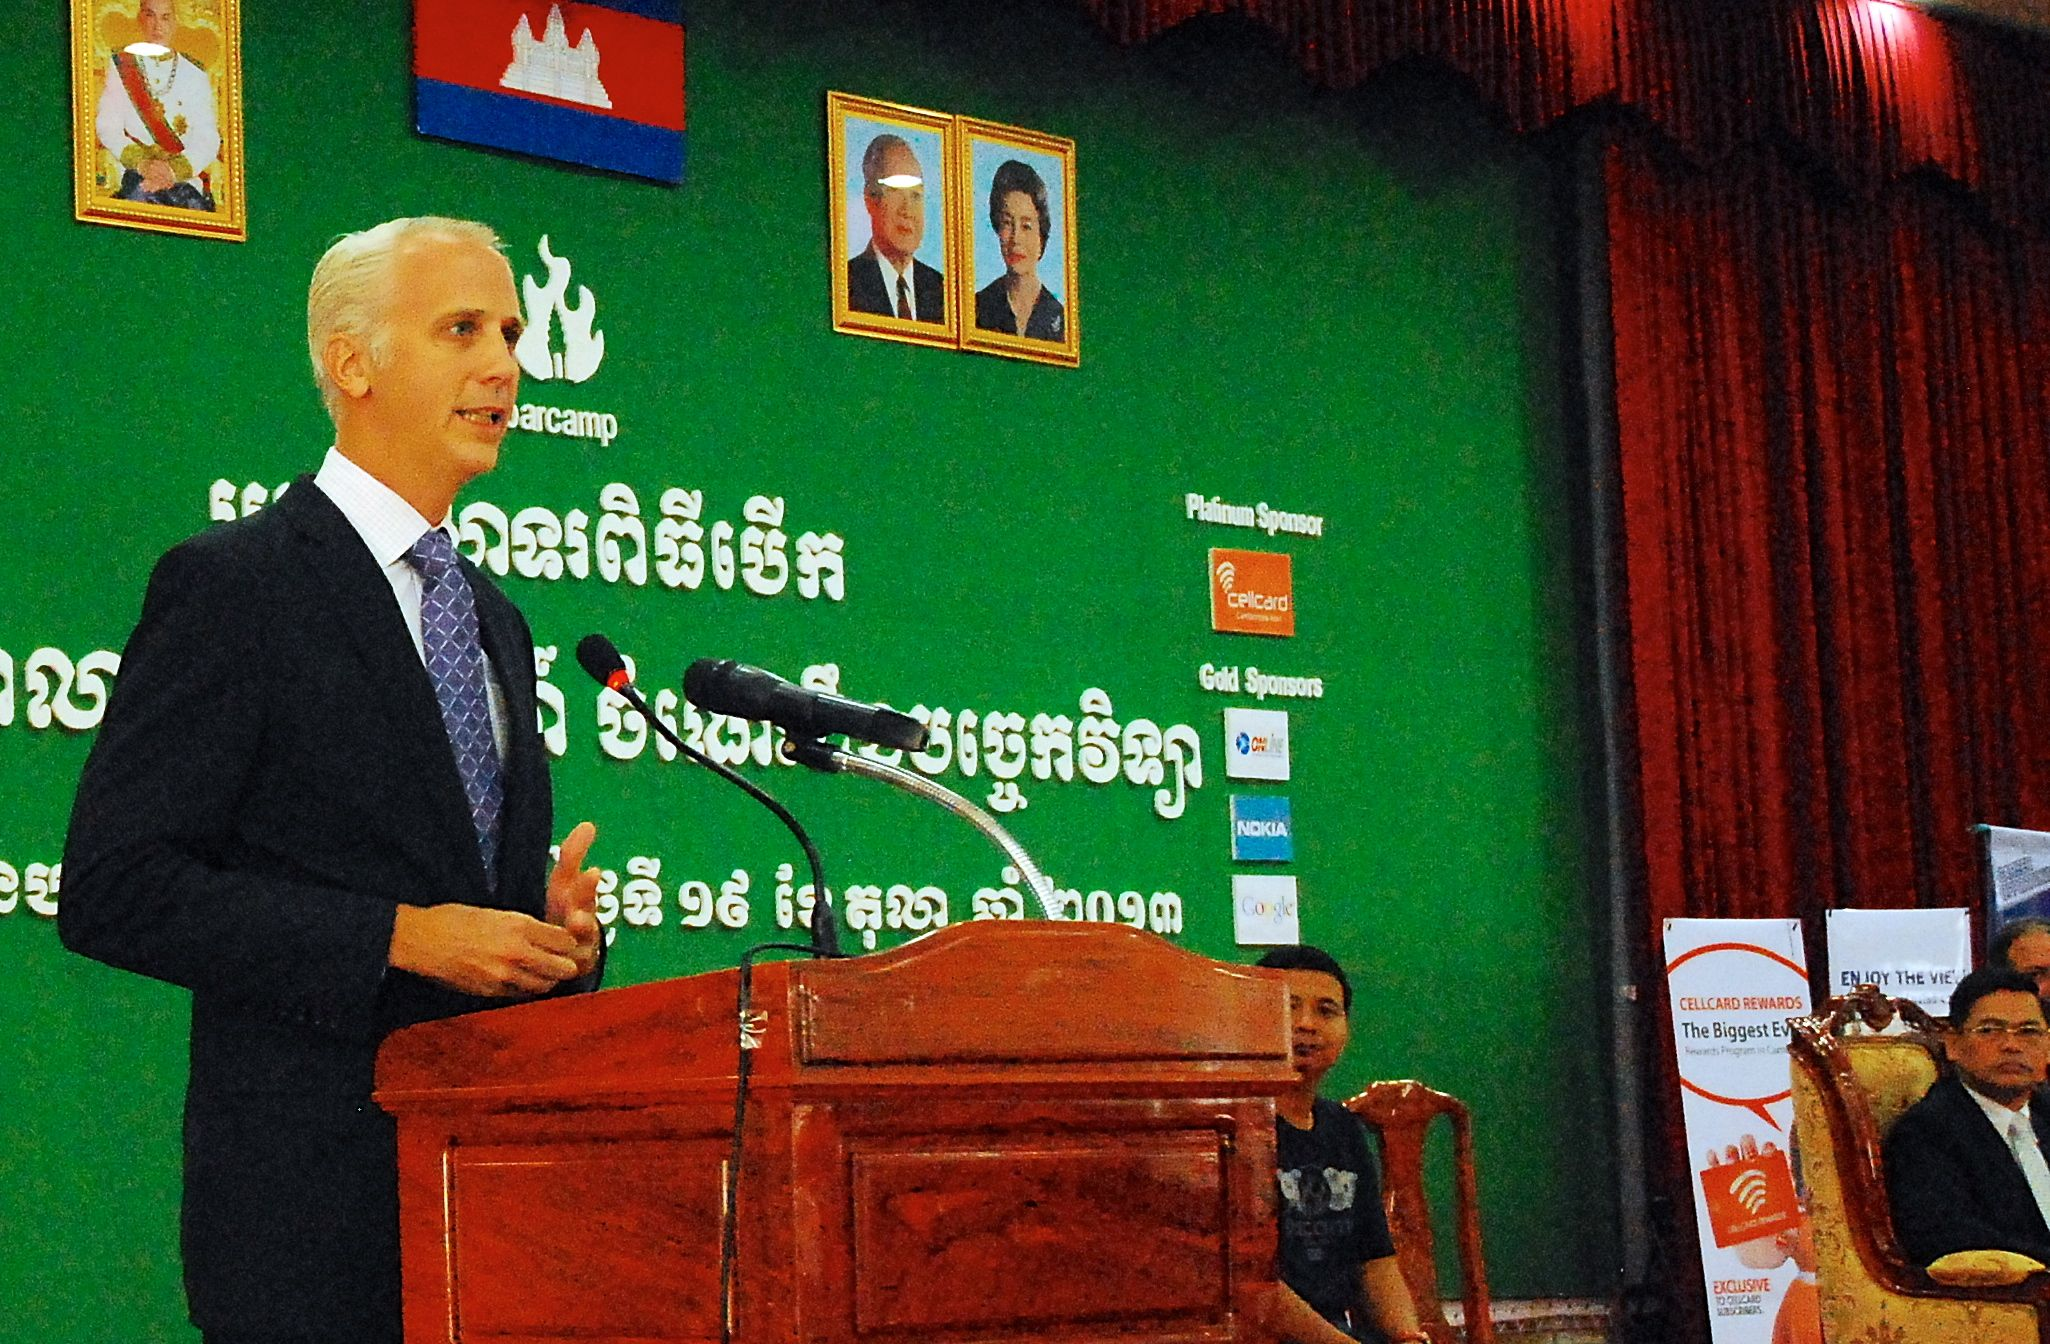 Sean Callahan of USAID Cambodia delivers opening remarks at BarCamp Phnom Penh on October 19, 2013